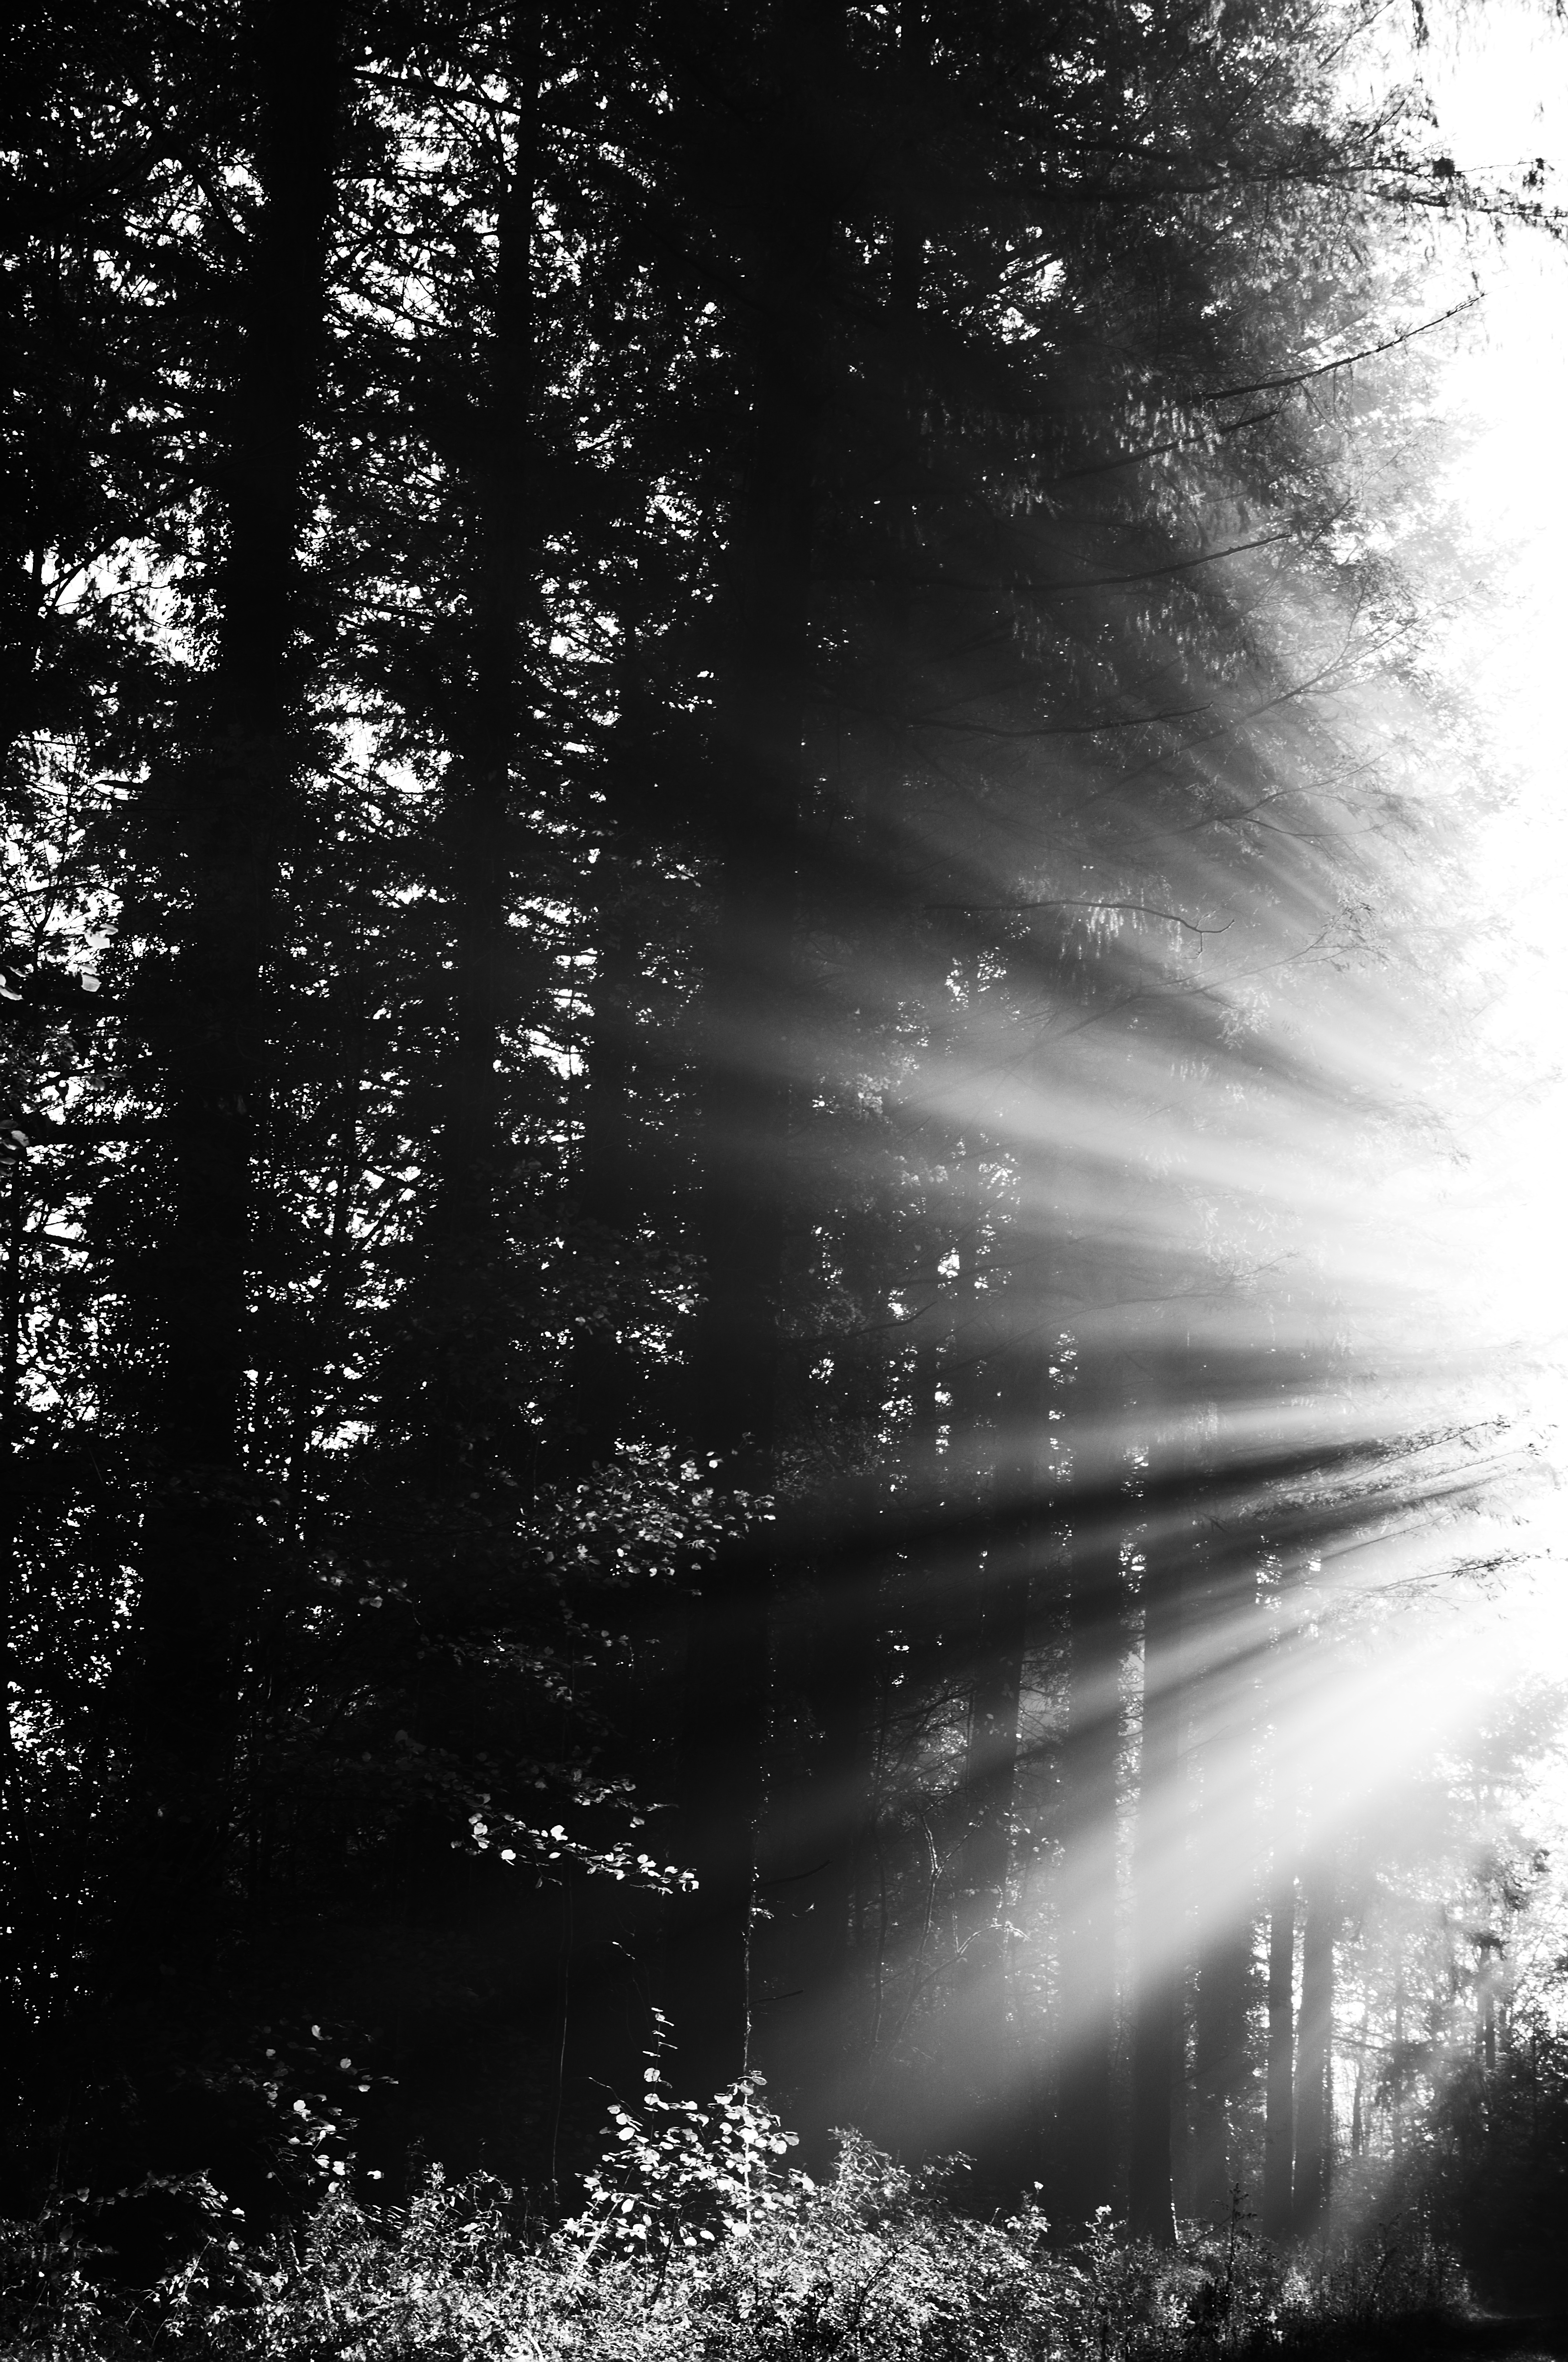 117483 download wallpaper Nature, Forest, Beams, Rays, Bw, Chb, Sun screensavers and pictures for free